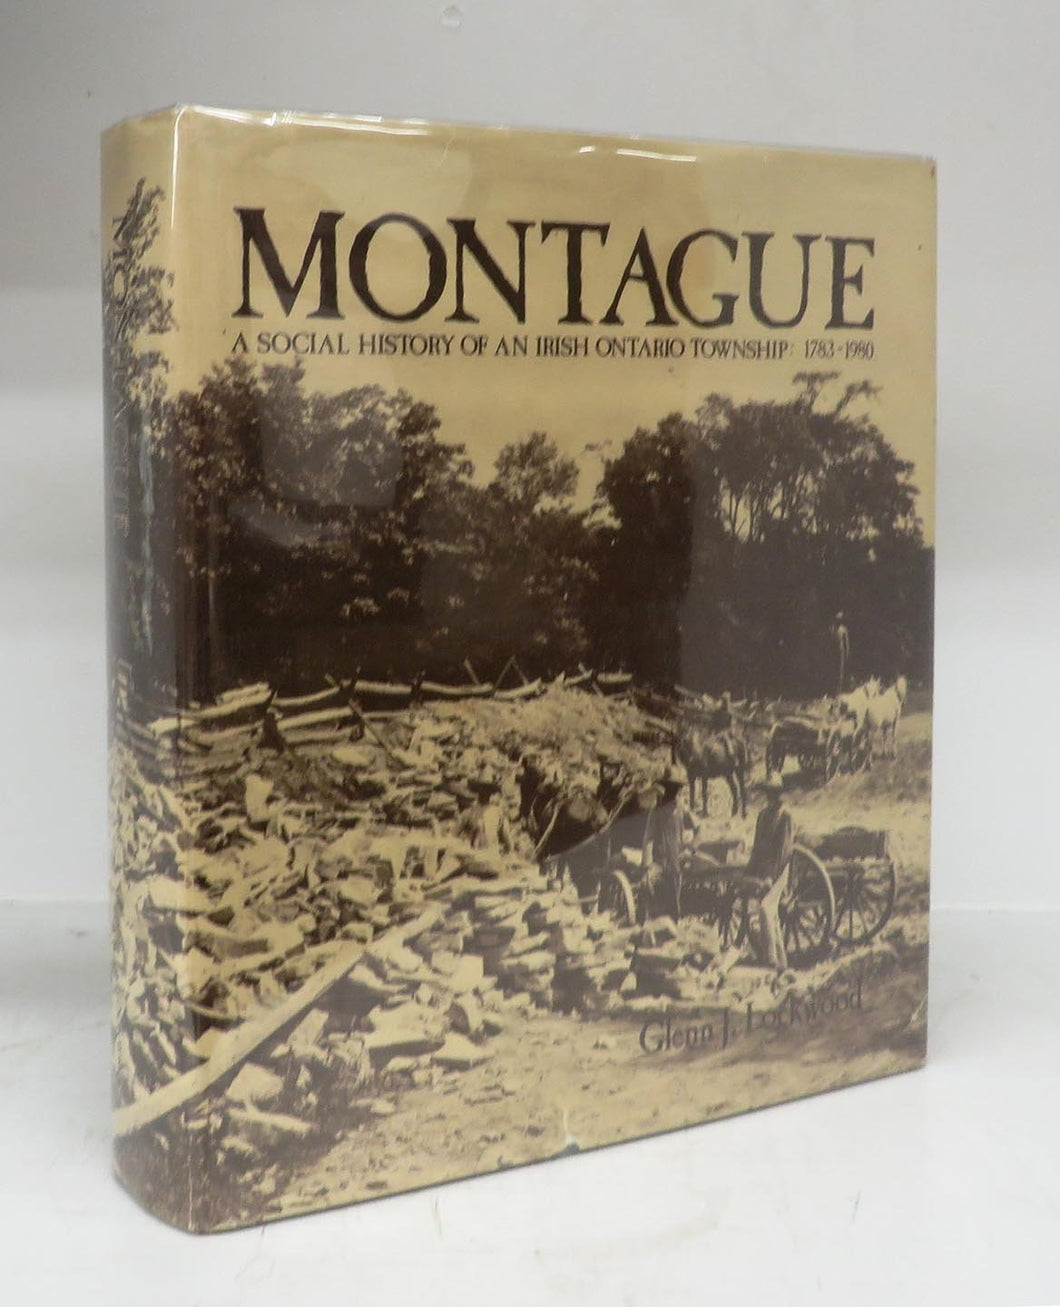 Montague: A Social History of an Irish Township 1783-1980